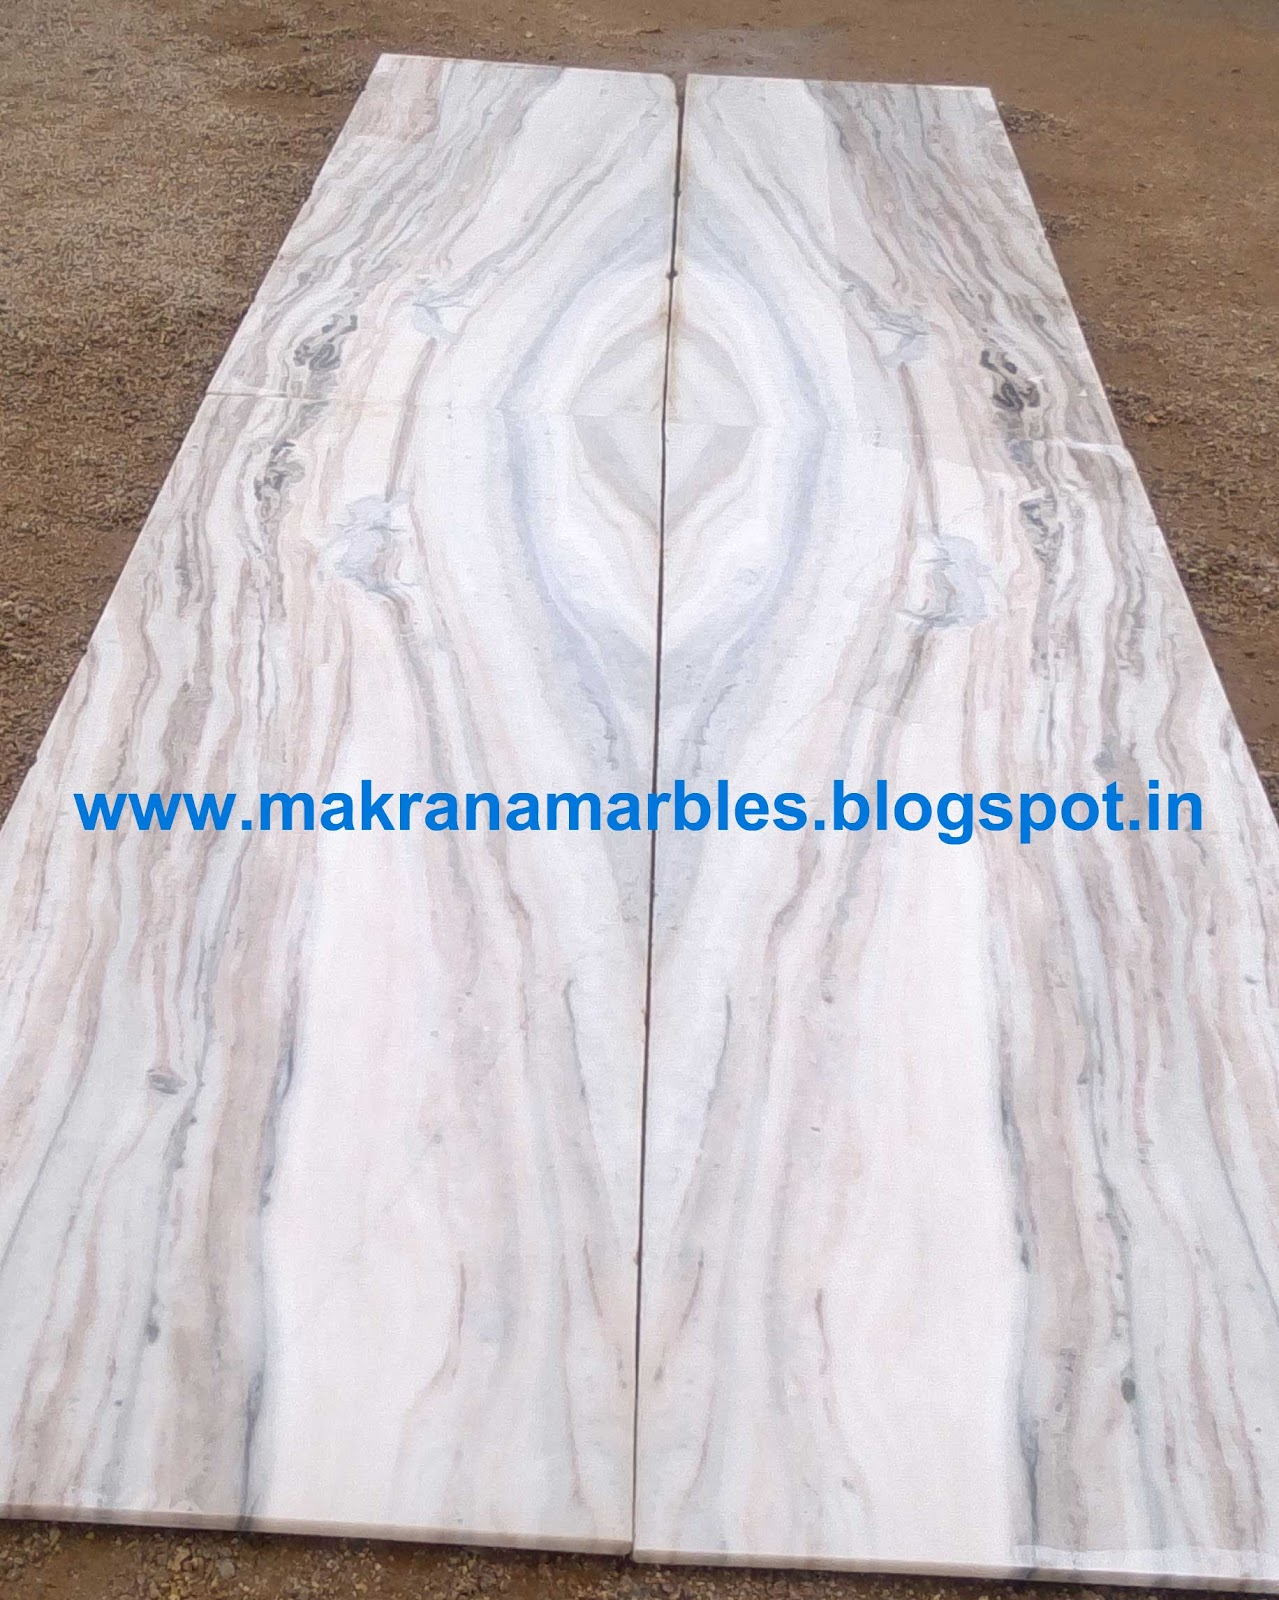 Makrana Marble Flooring Designs : Makrana marble product and pricing details